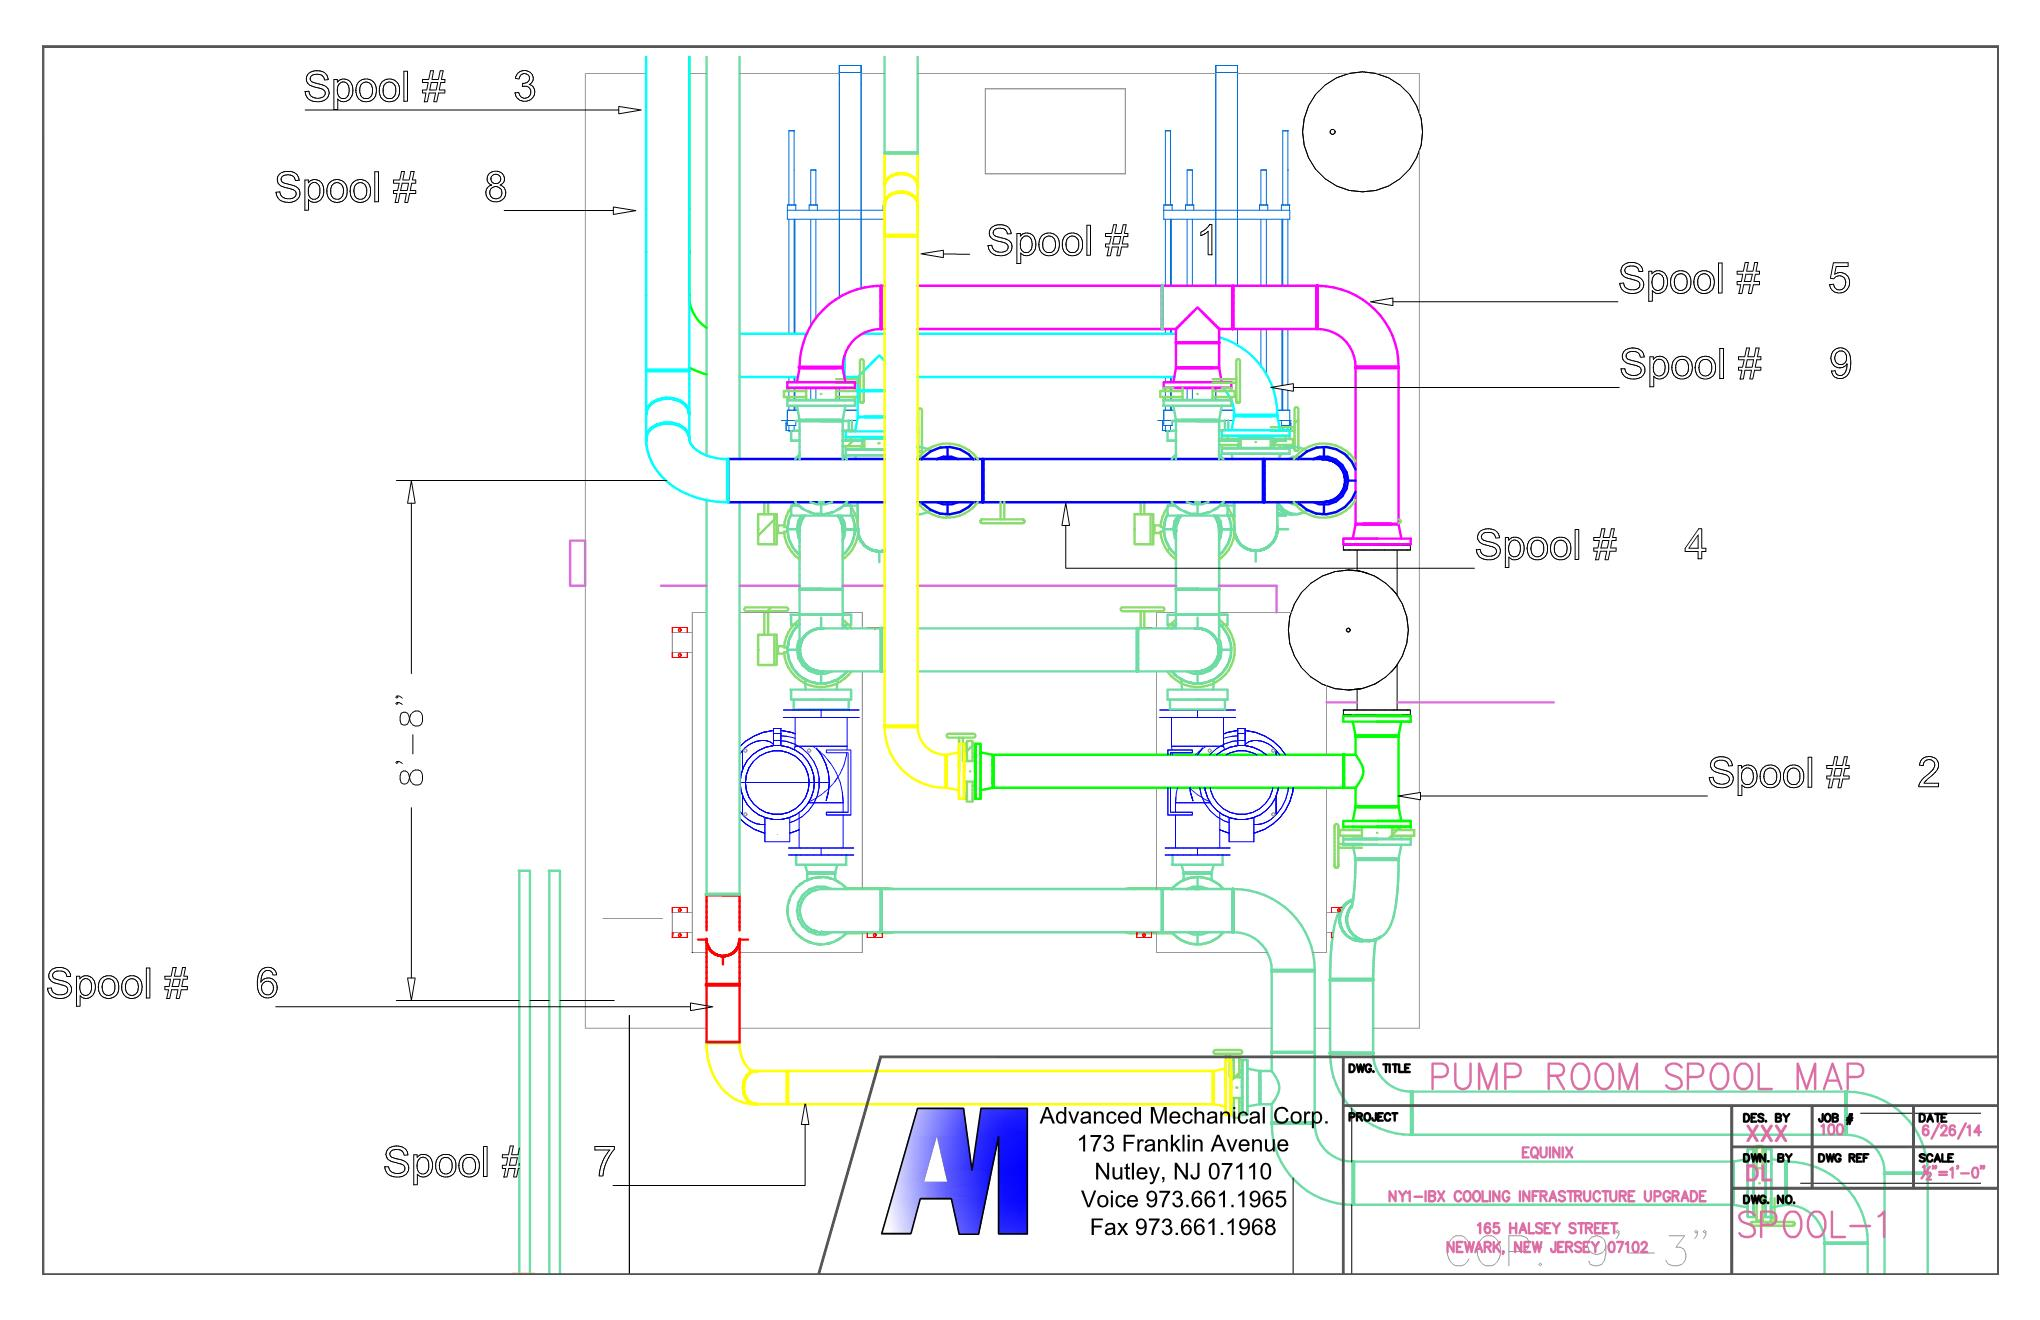 Bim0 Autocad Drawing Expertise Advanced Mechanical Corp Amc Hvac Piping Other